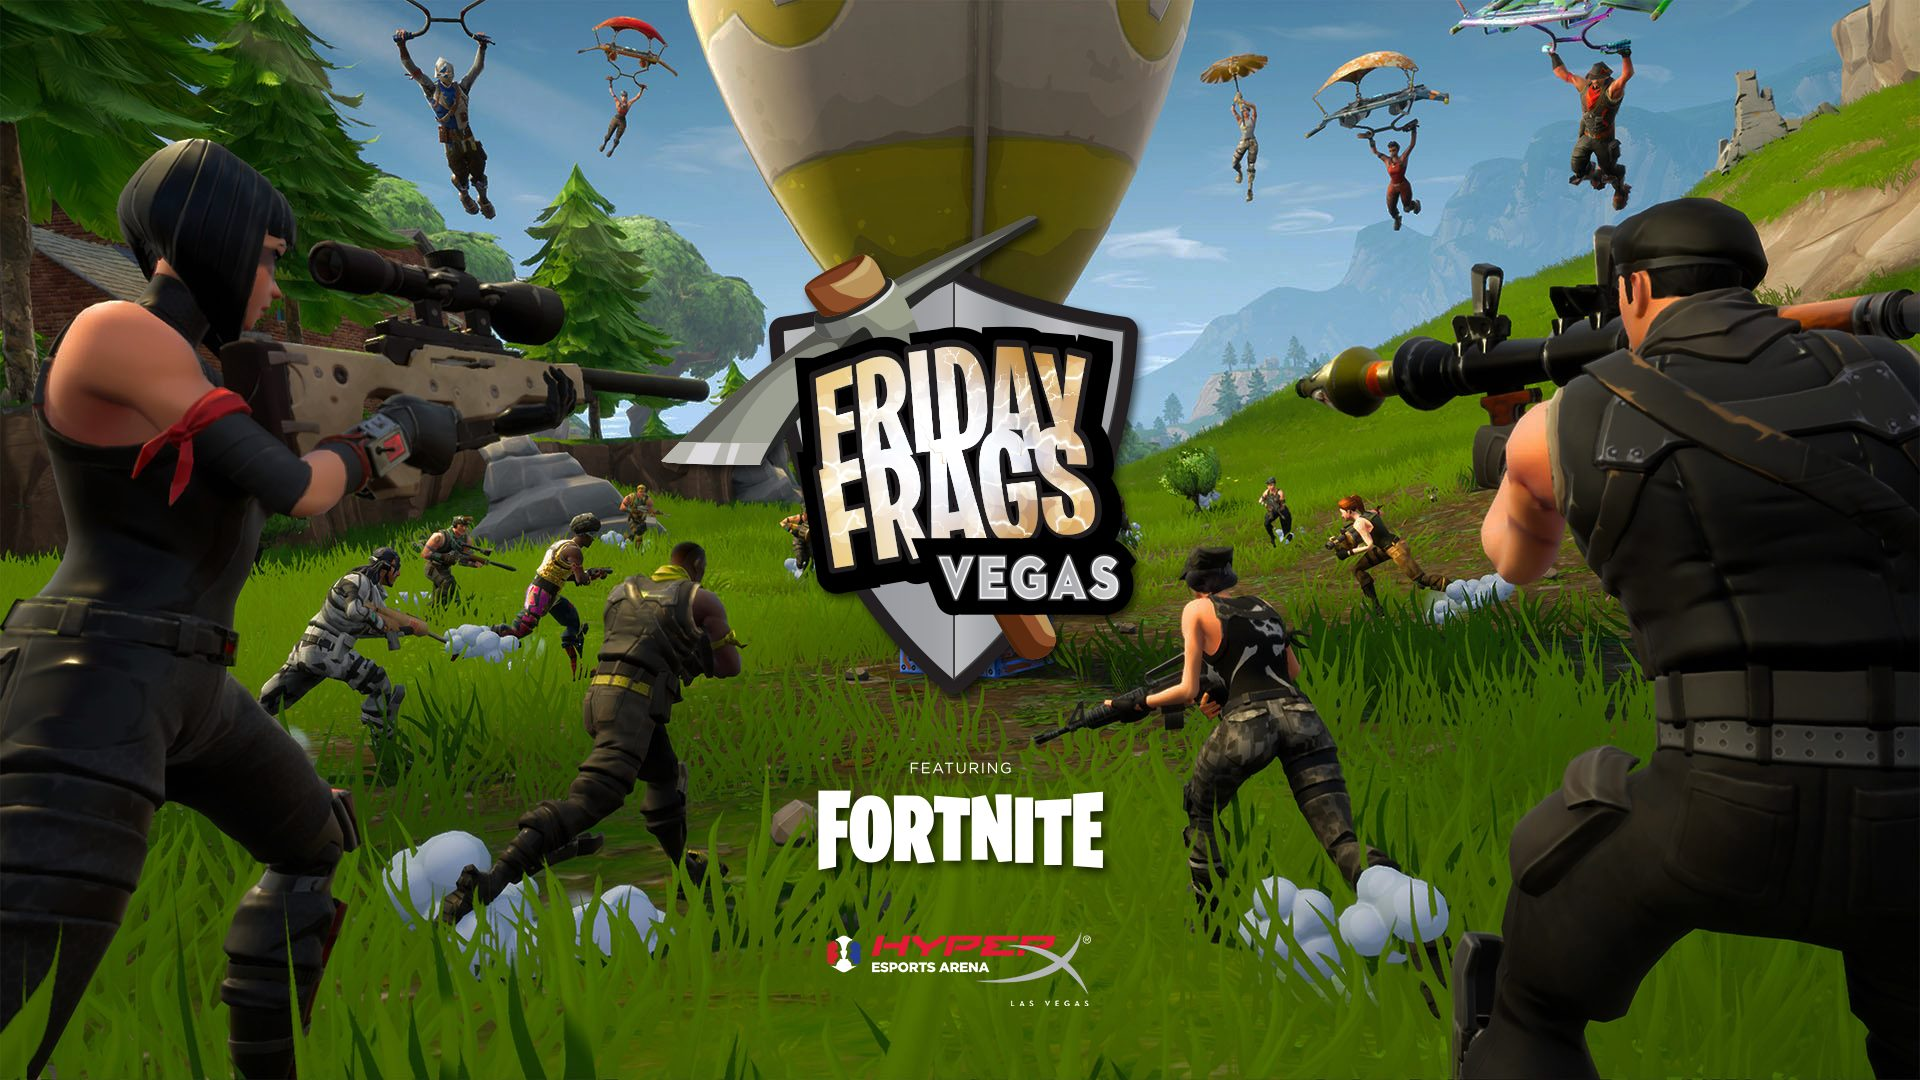 Friday Frags 55 - 9/27 $2,000 GTD at HyperX Esports Arena